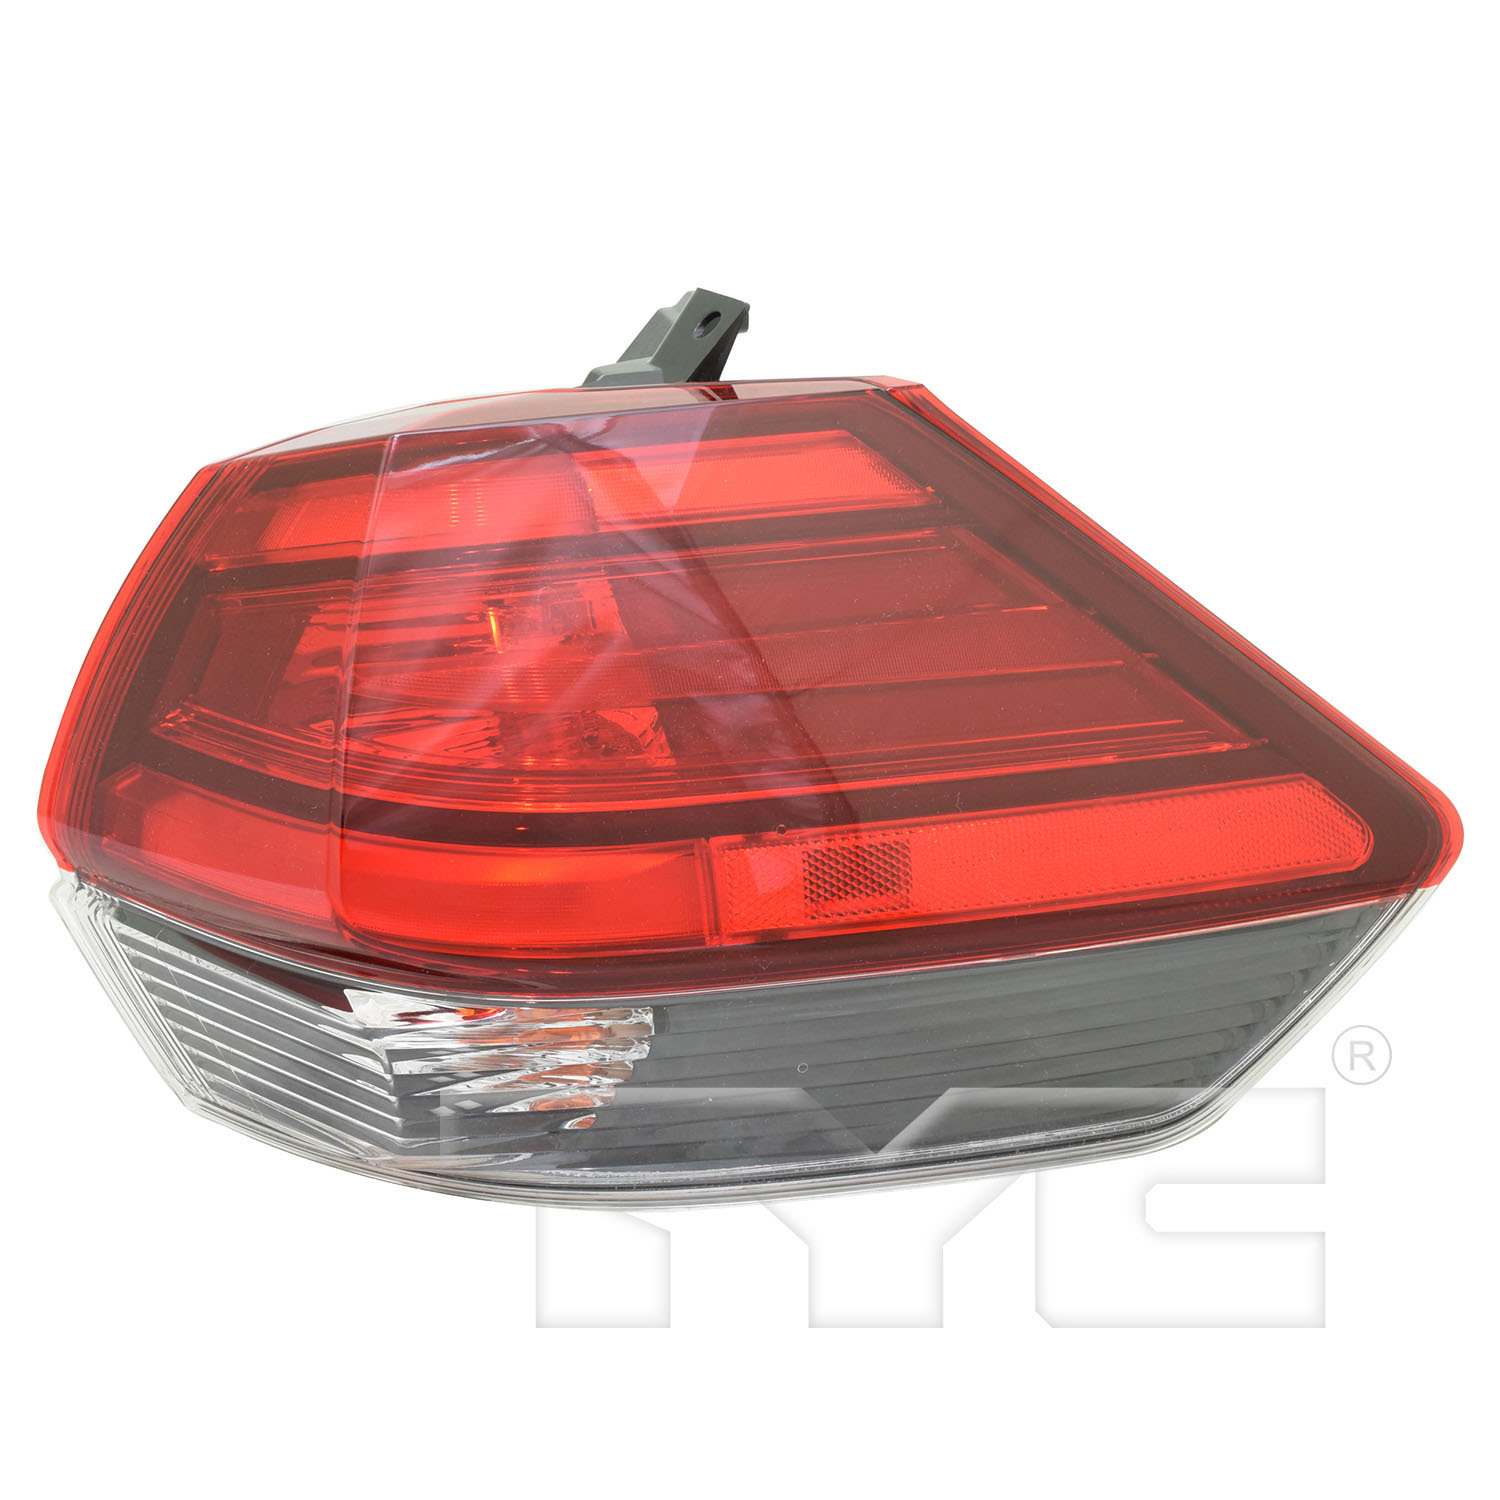 Details about Fits 17-17 Nissan Rogue Quarter Passenger Right Side Tail  Light Rear Lamp NSF